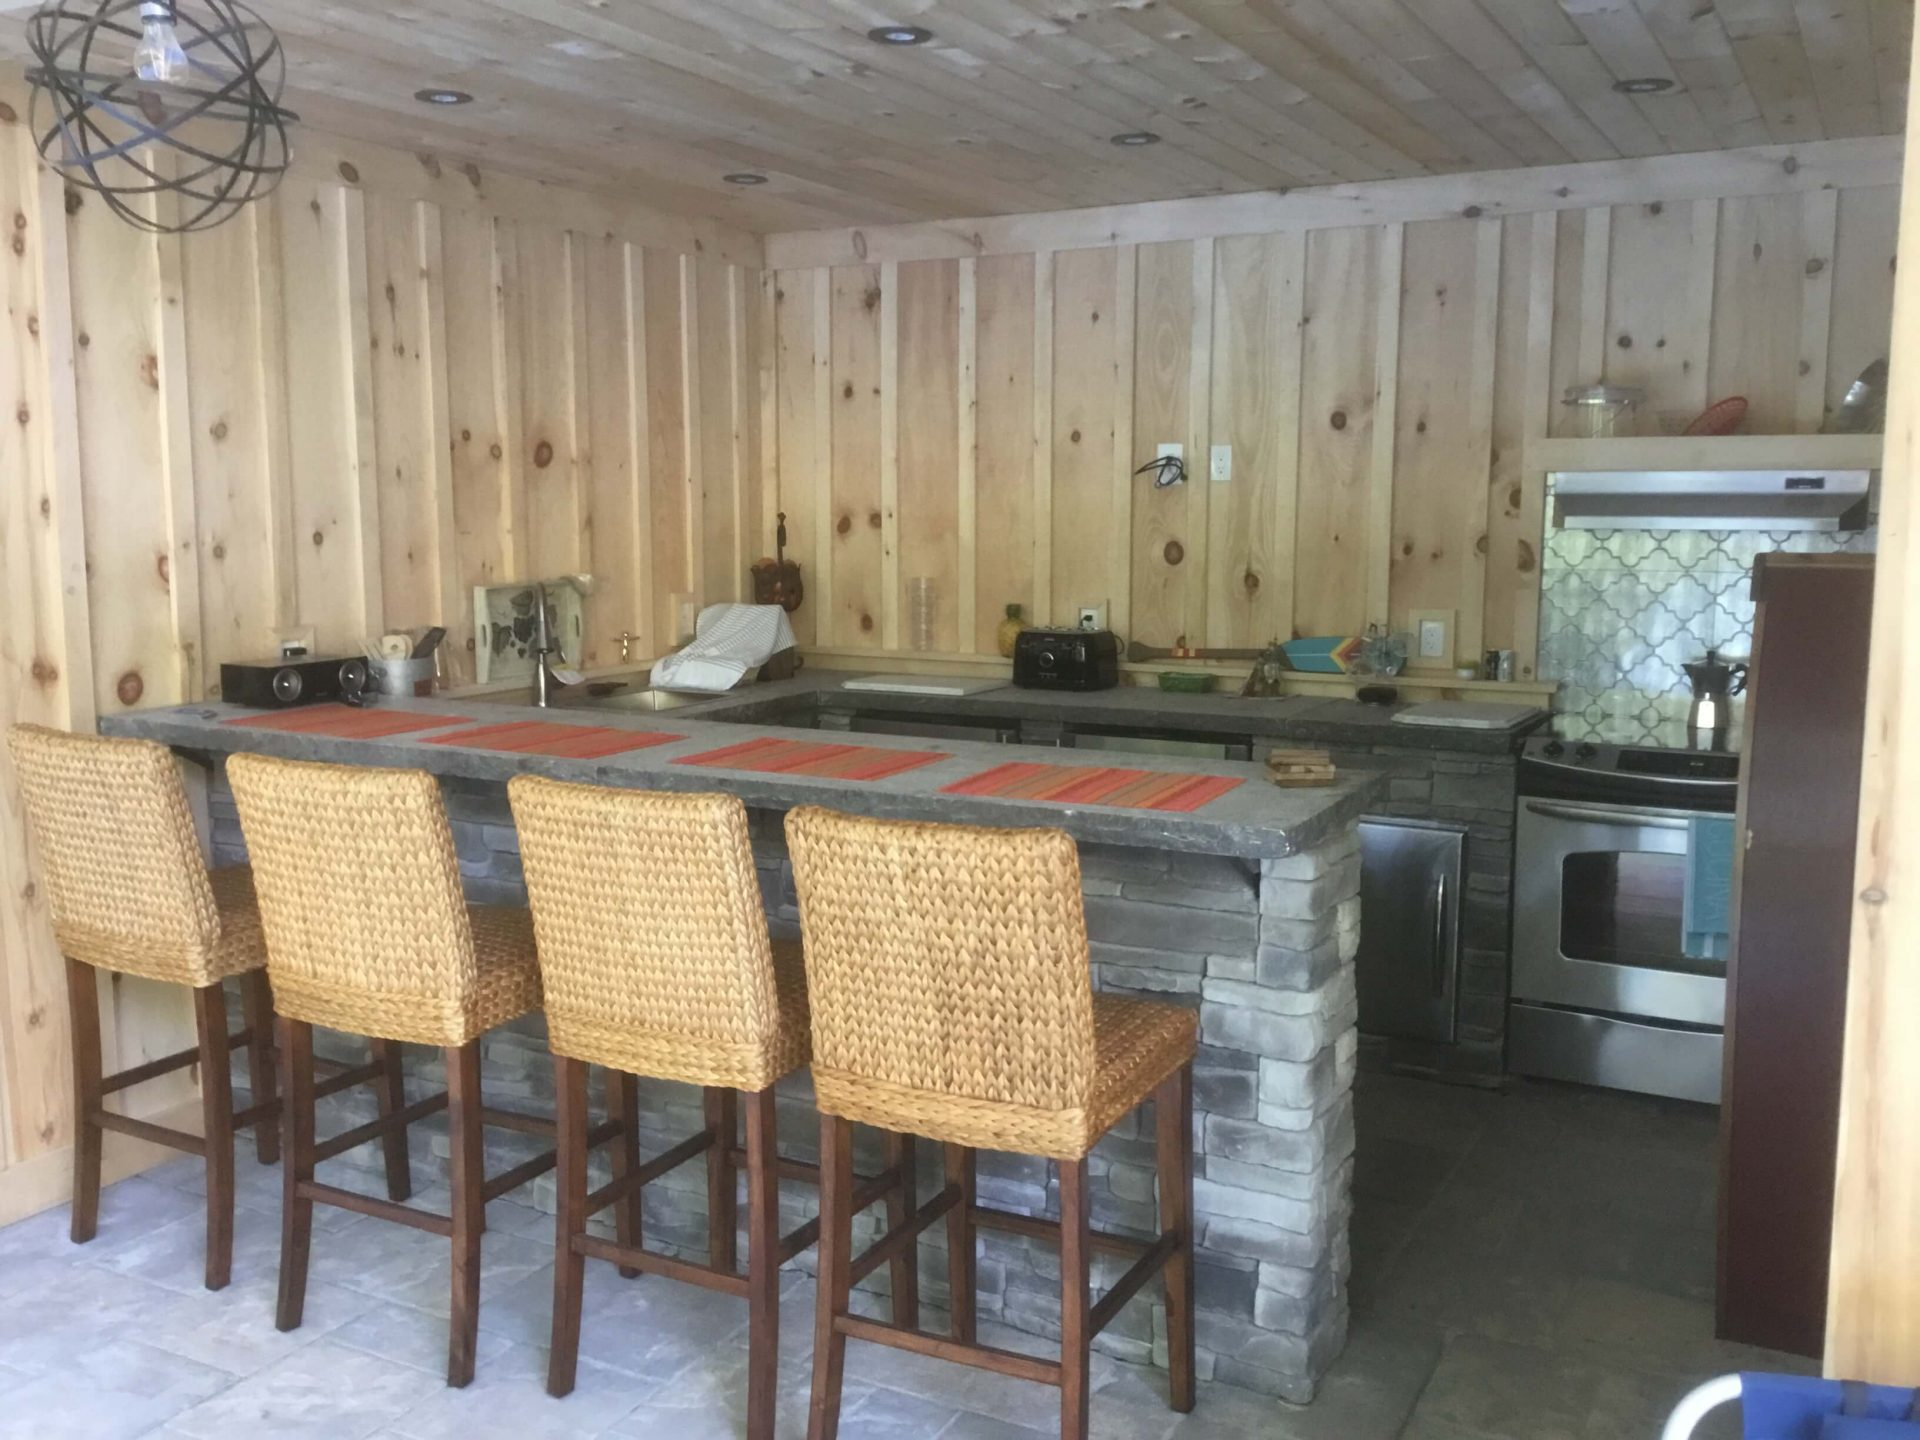 Inside pool house featuring kitchen and bar top table